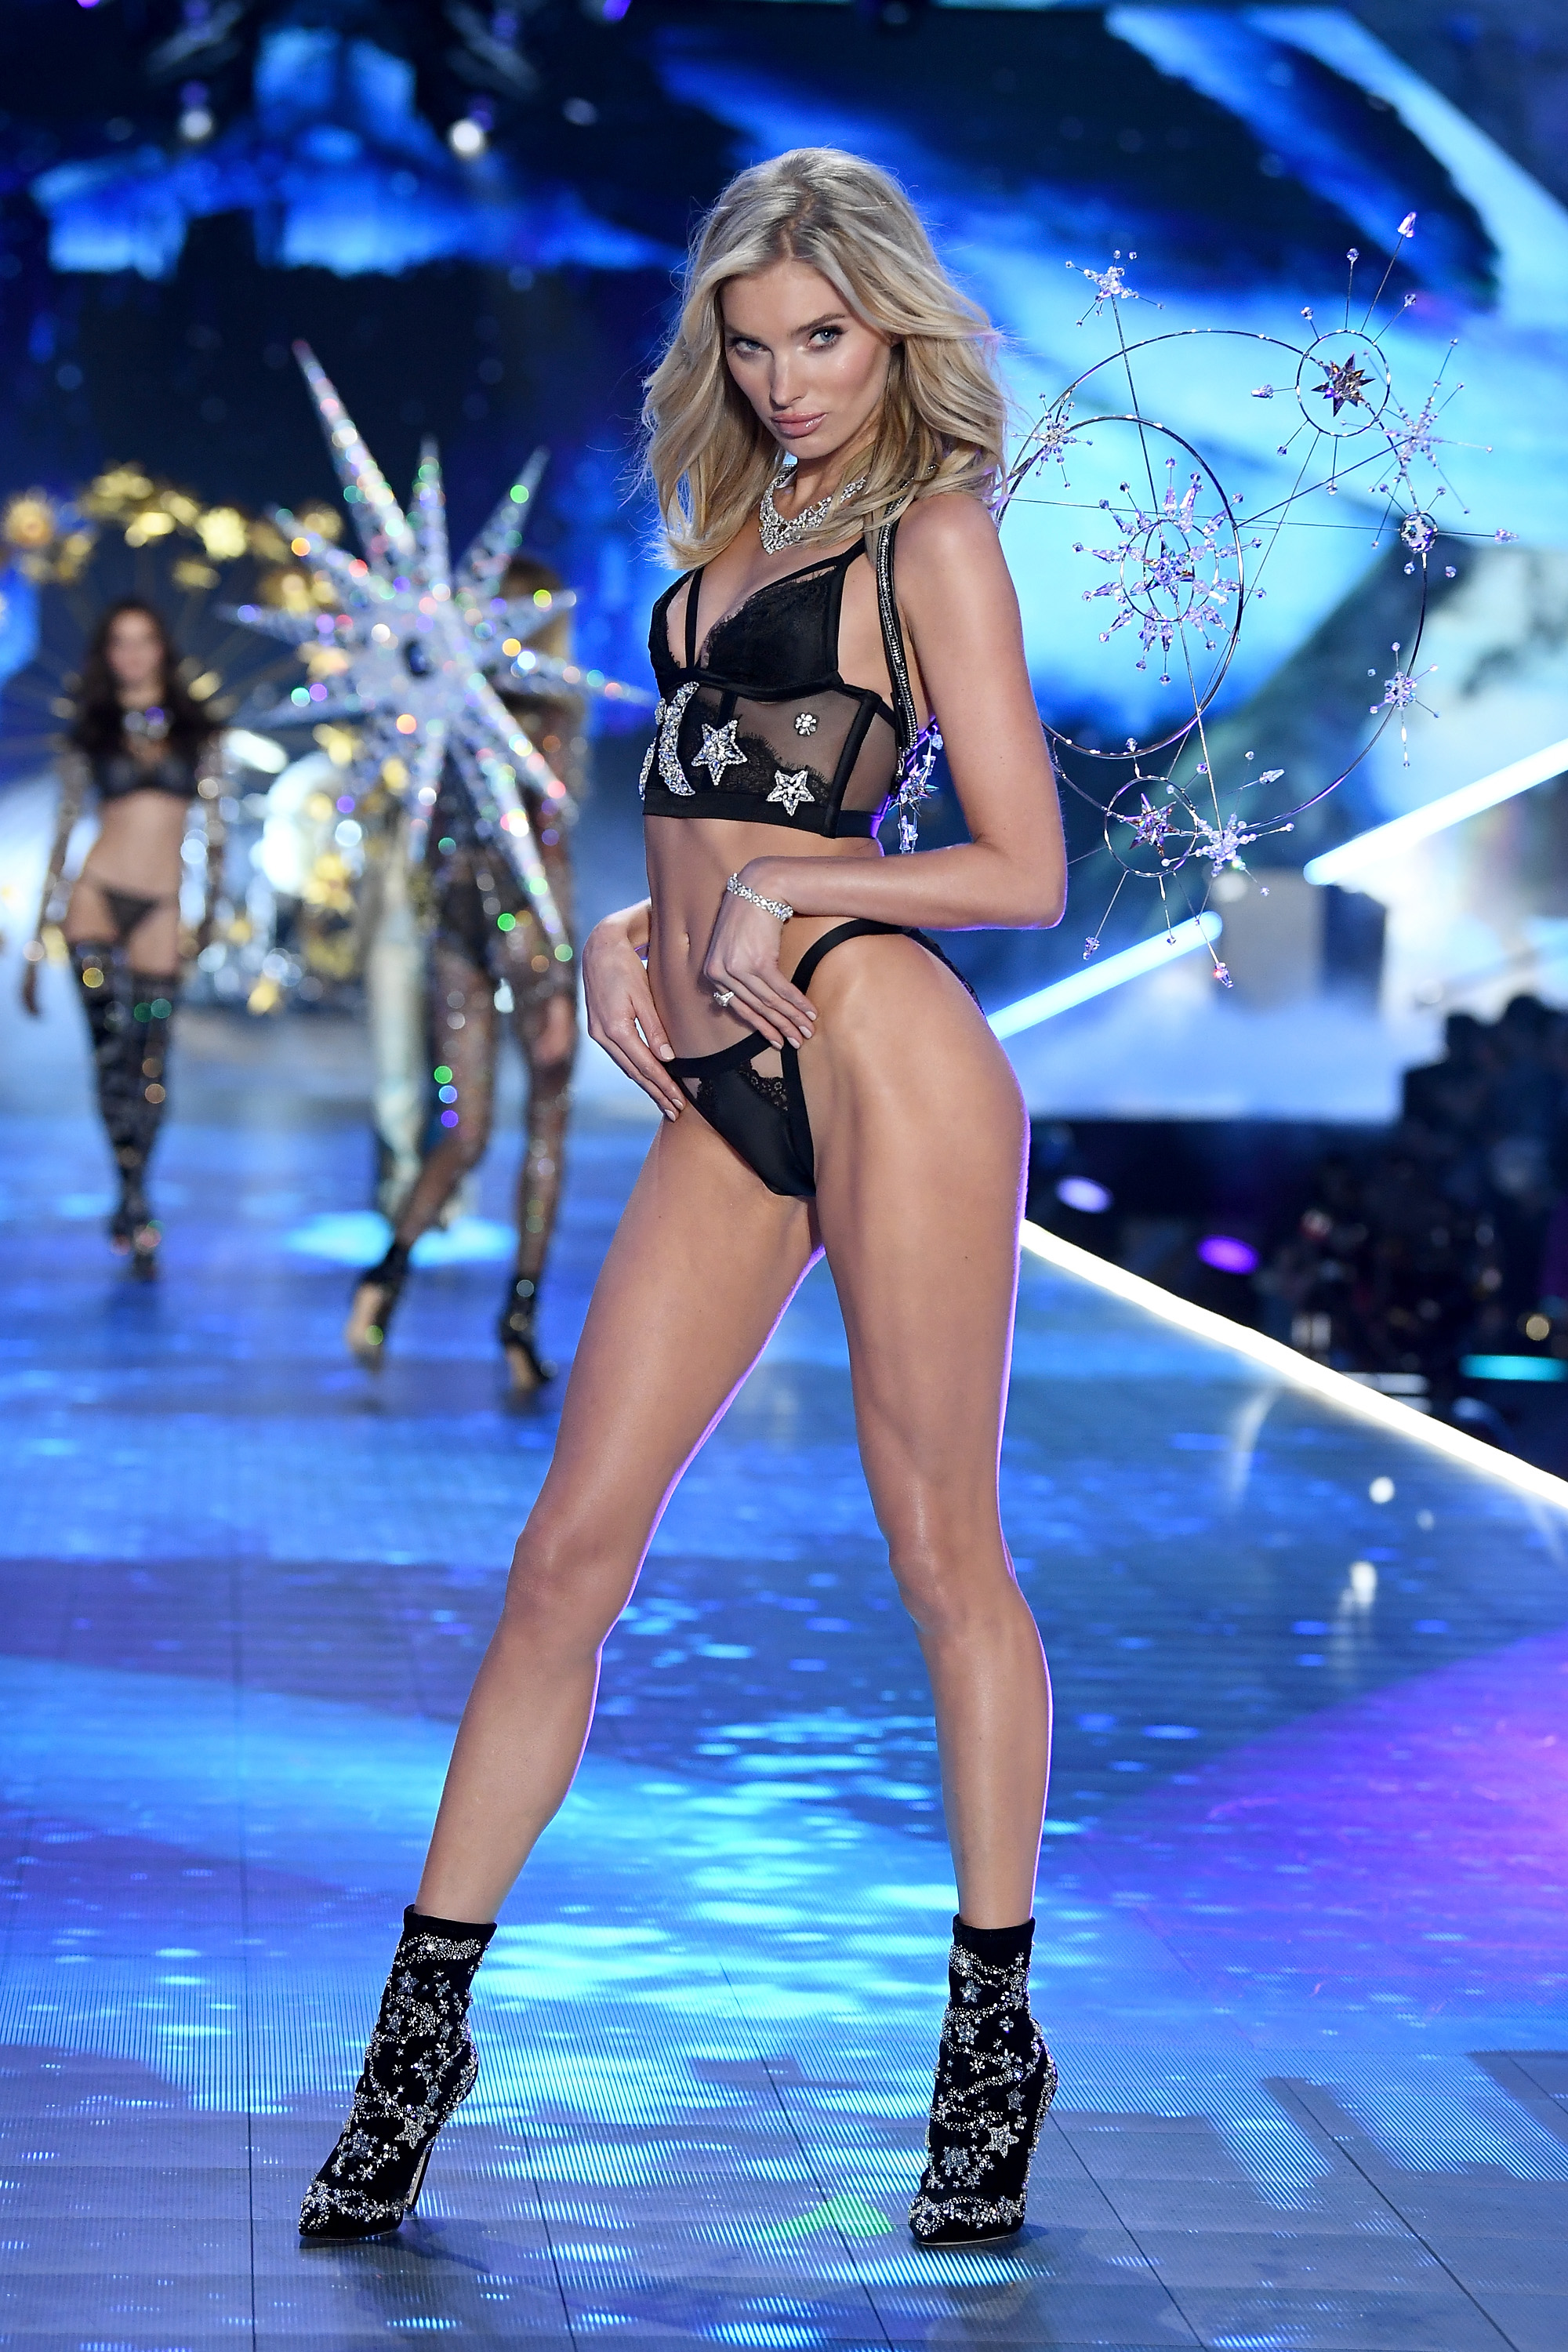 Elsa Hosk walks the runway during the 2018 Victoria's Secret Fashion Show at Pier 94 on November 8, 2018, in New York City. (Getty Images)